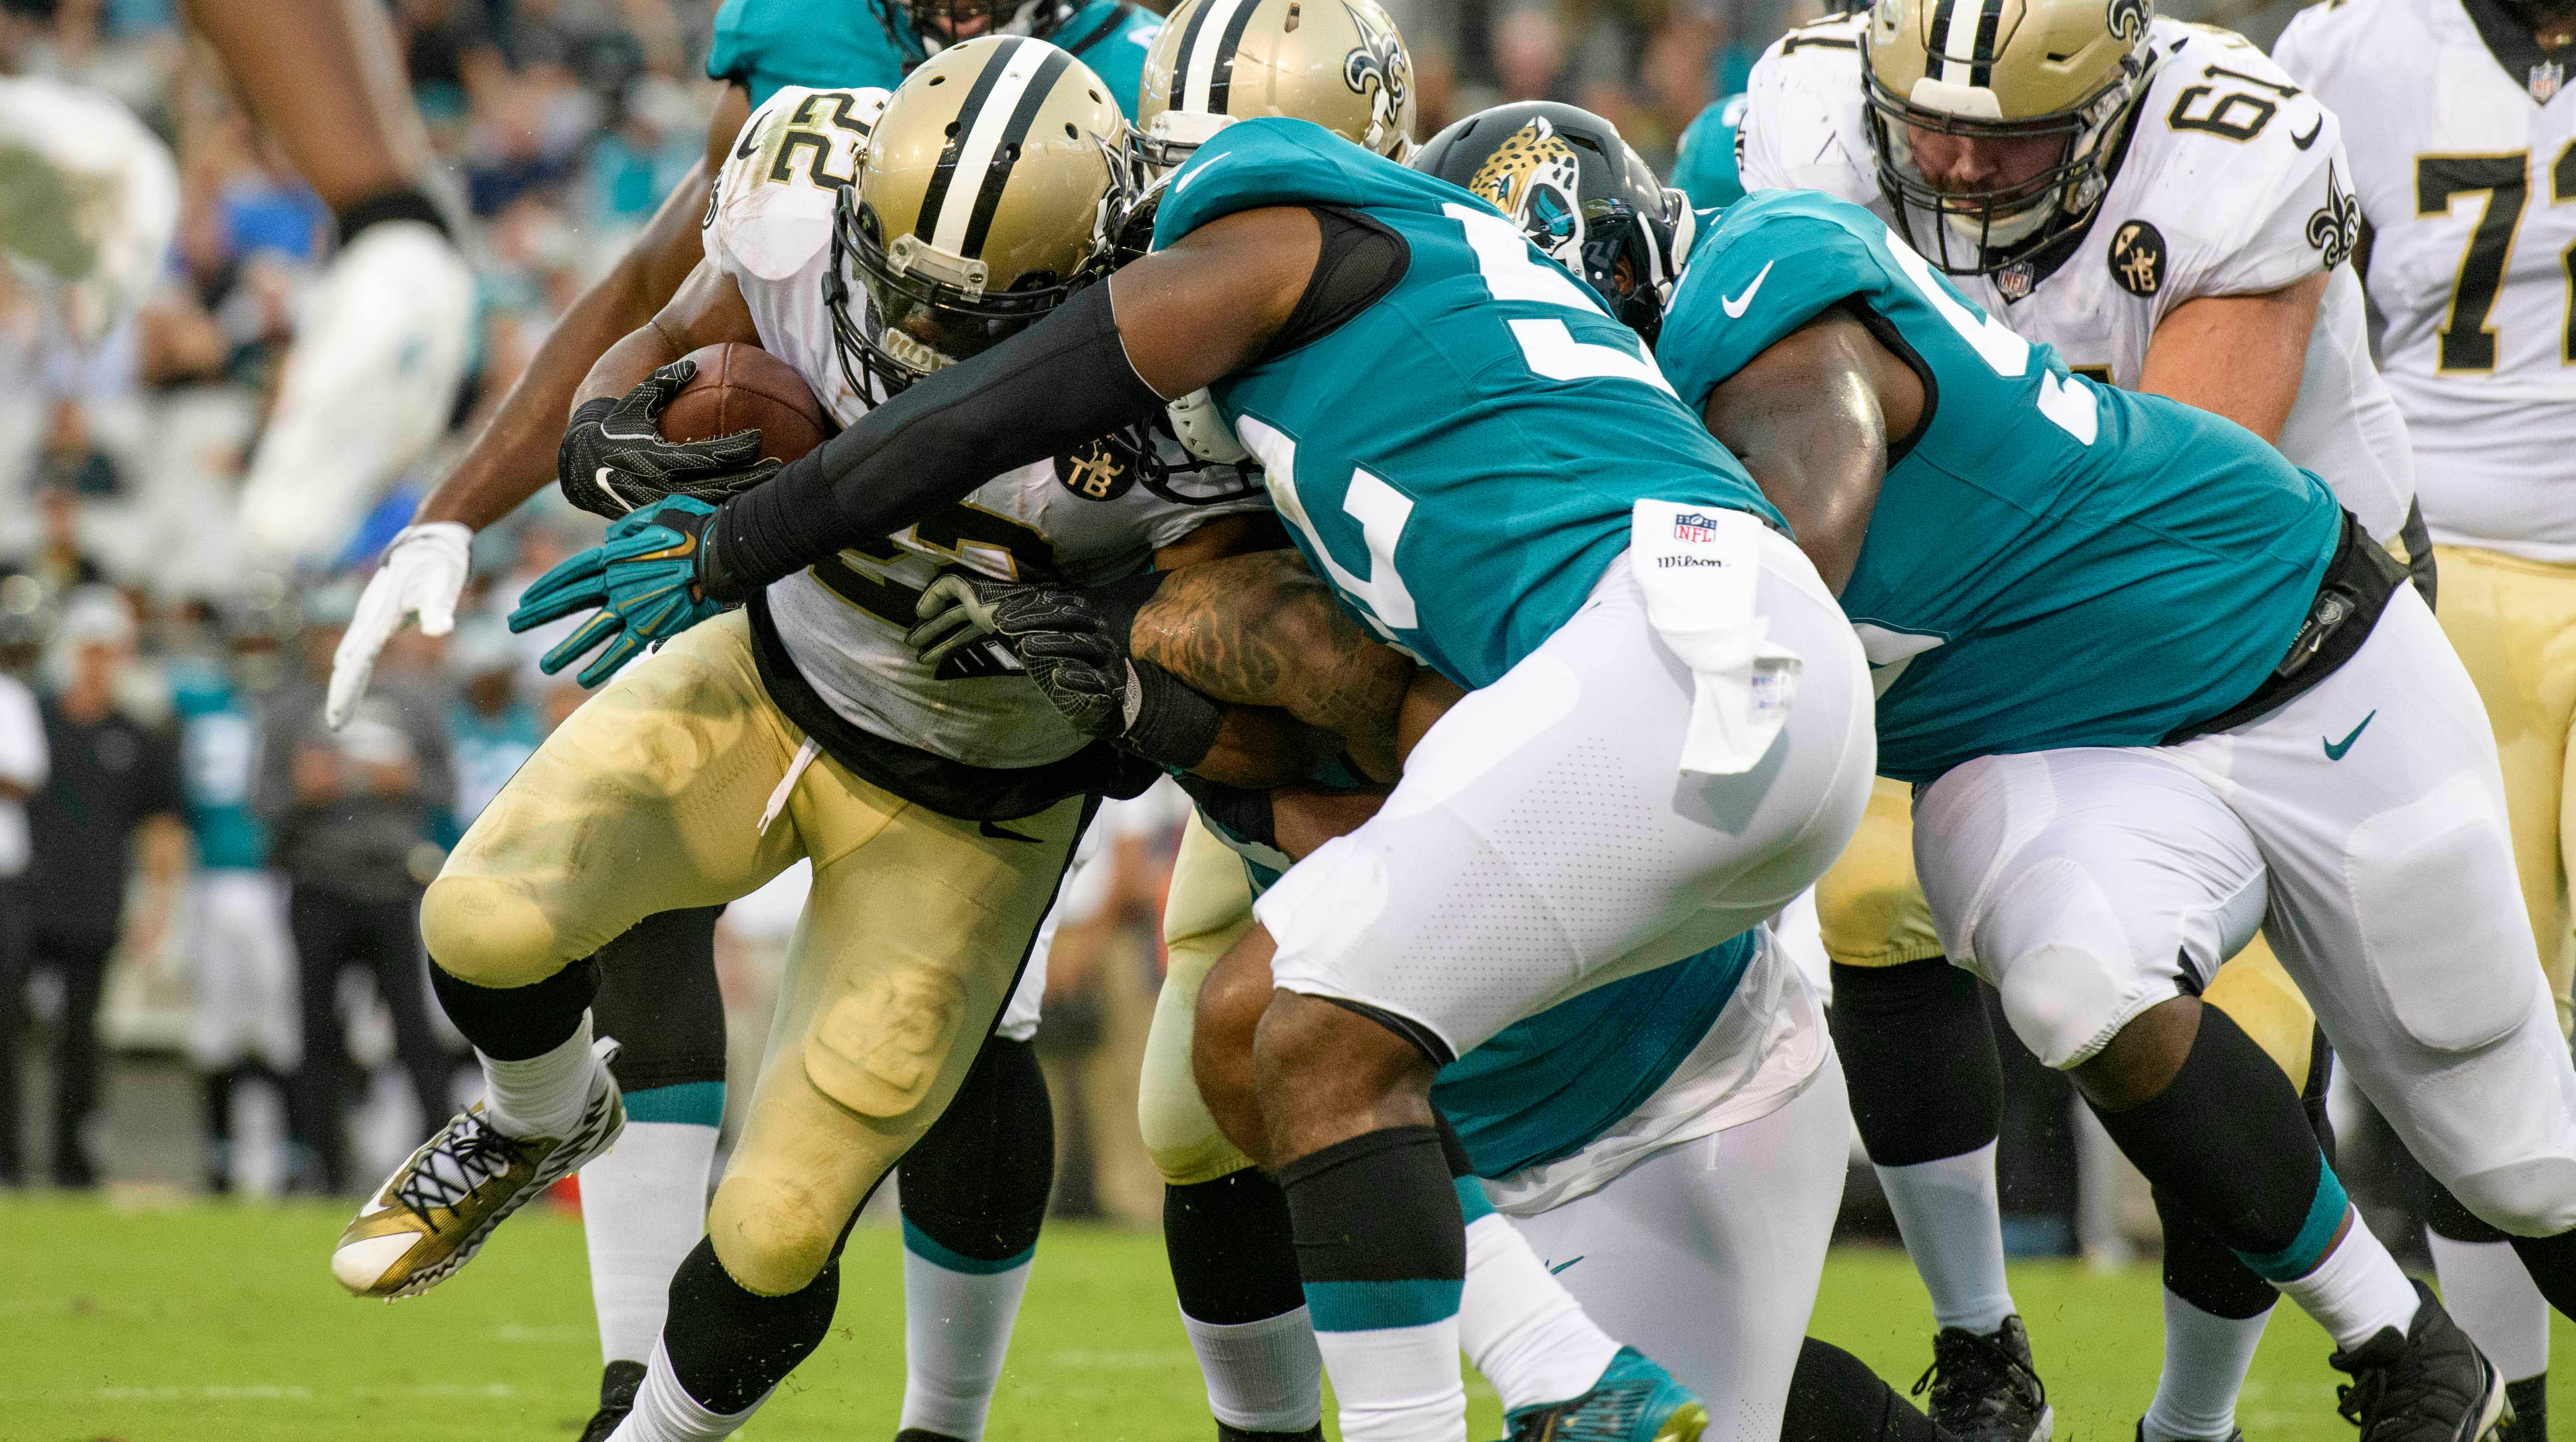 New Orleans running back Mark Ingram runs seven times for 23 yards and a touchdown.